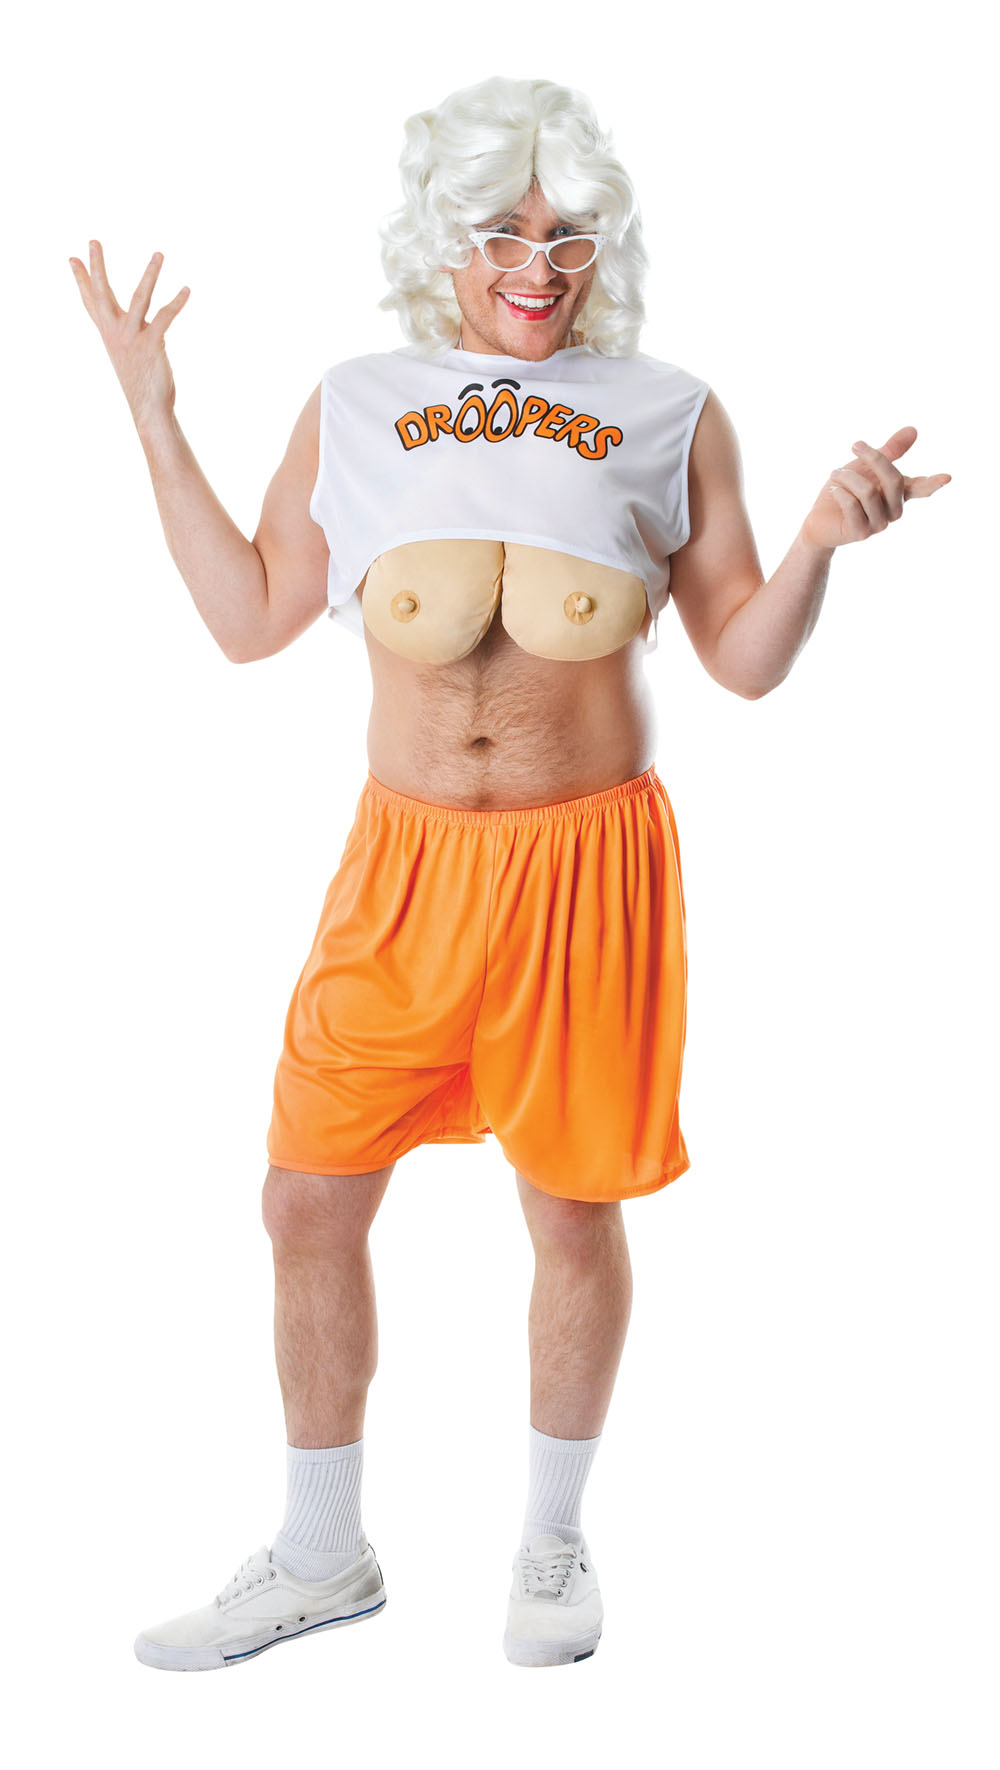 Mens Comedy Hooters T-Shirt Droopers Fancy Dress Costume Stag Do Outfit New